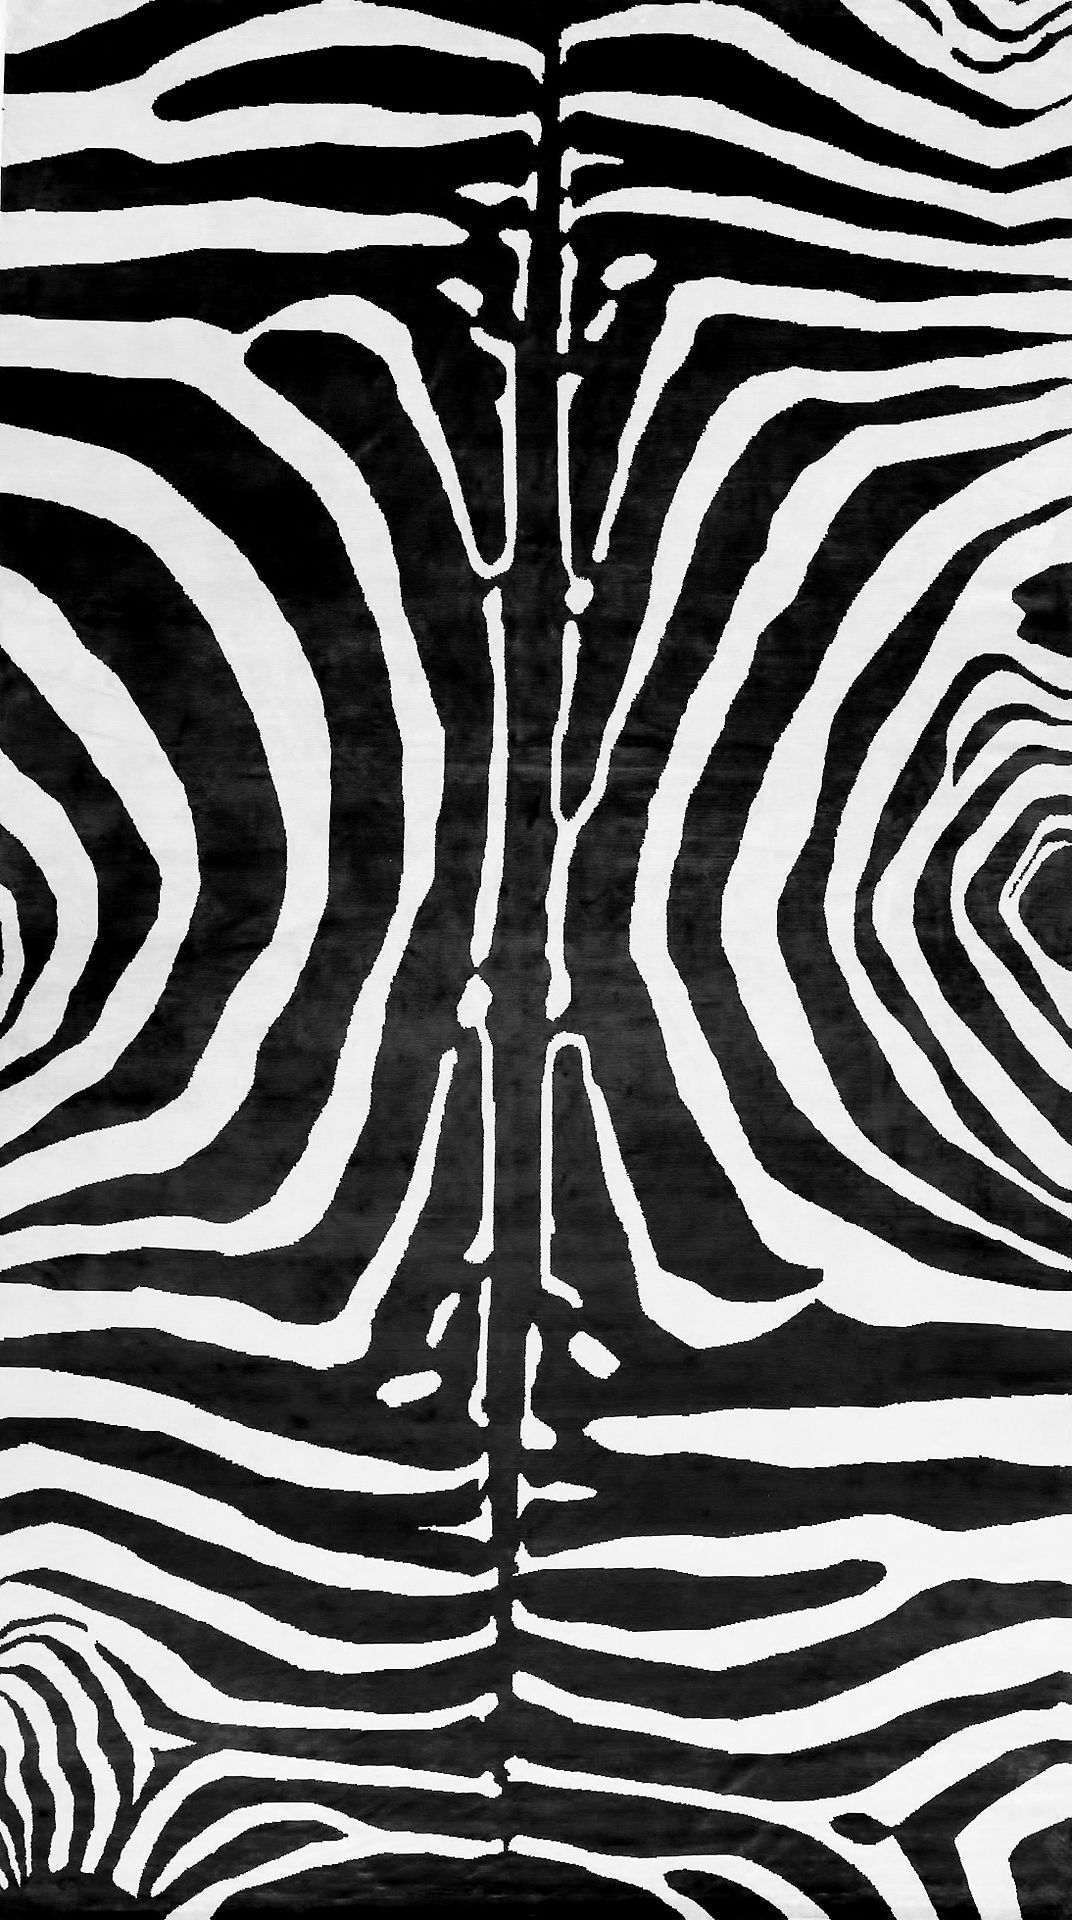 Black White Zebra Pattern Monochrome Print Design Kartiny